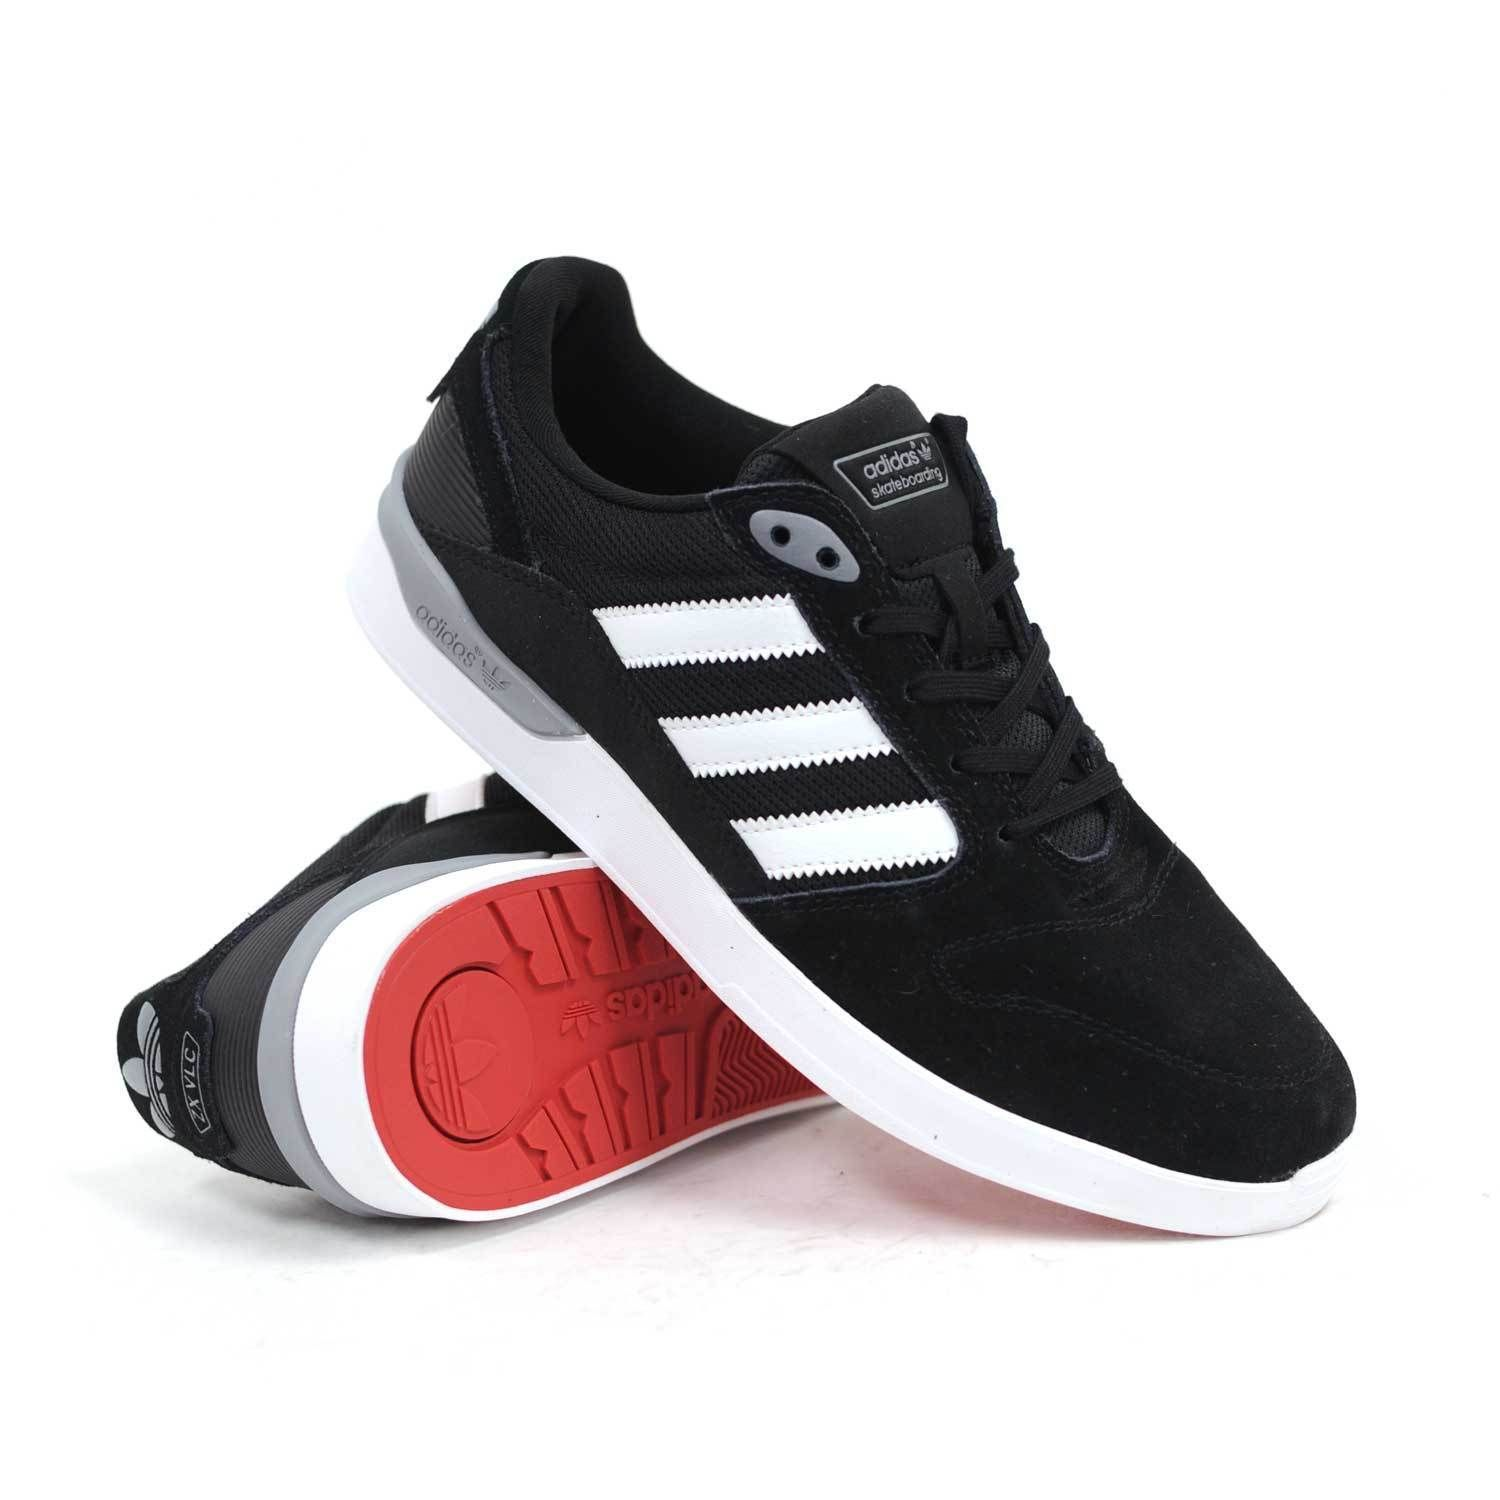 adidas ZX Vulc Skate shoes Black : C75184 - LeisurelyThreads